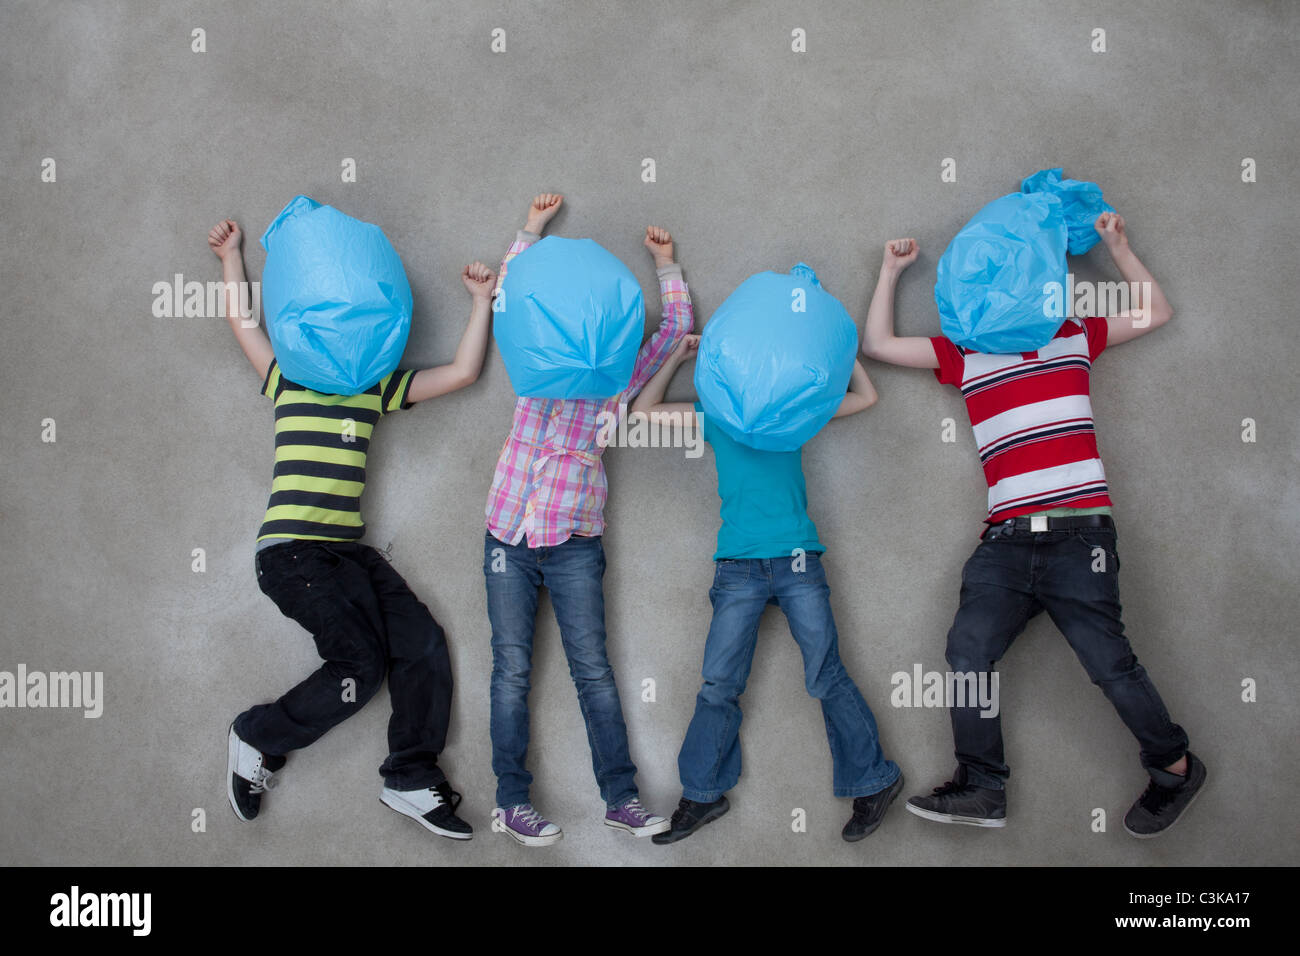 People covering their faces with plastic bags and showing ecology symbol - Stock Image